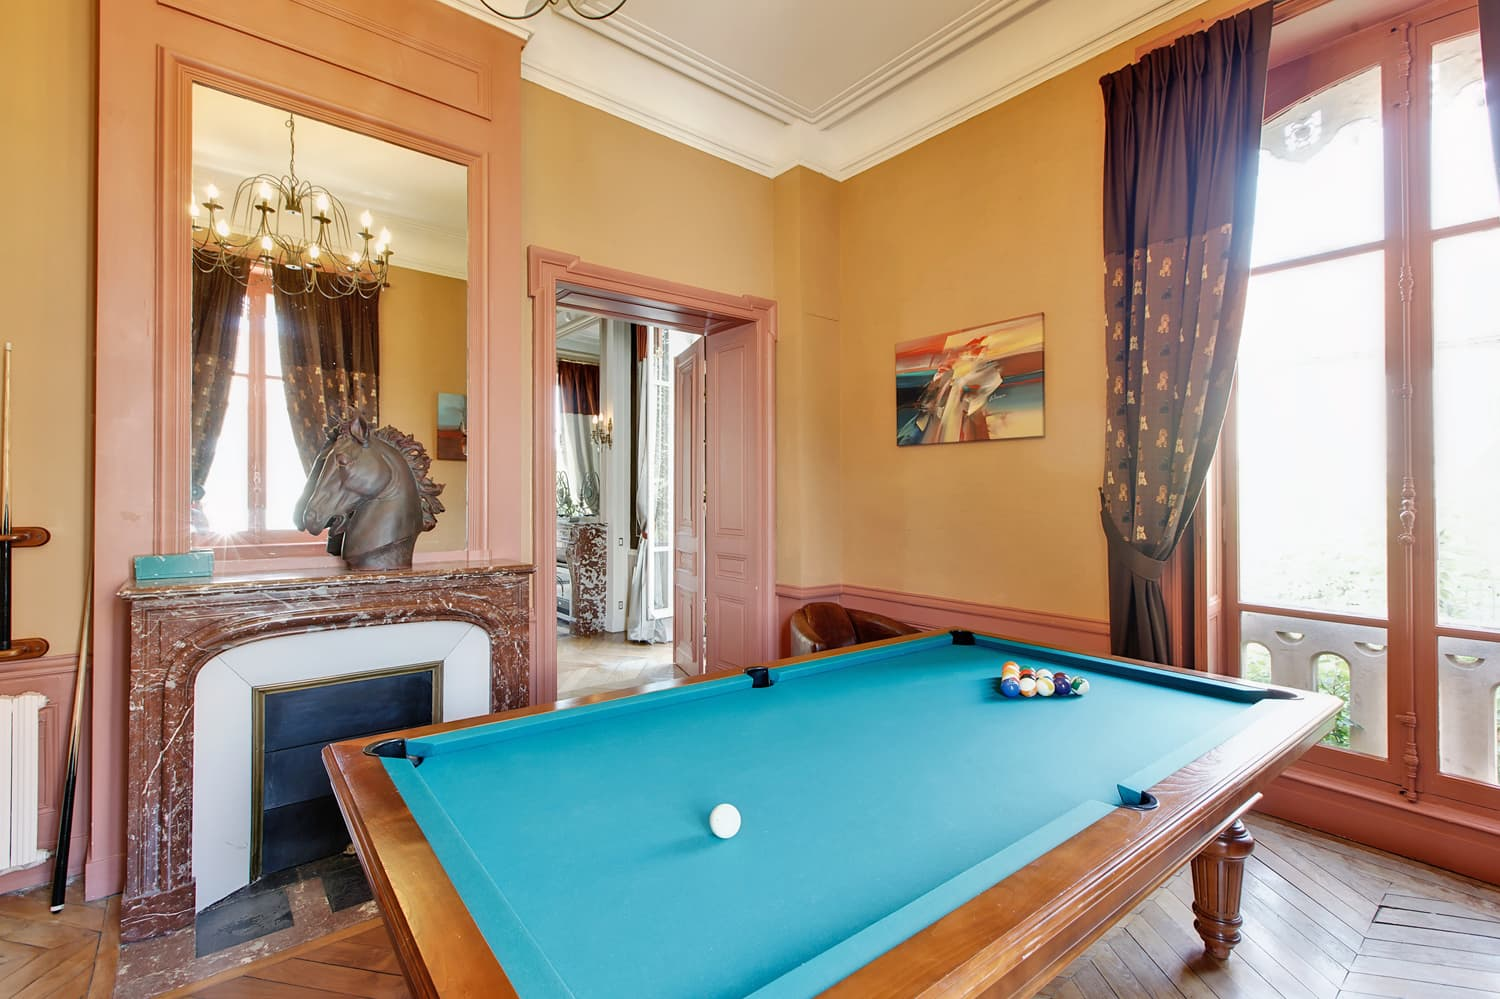 Pool room in Burgundy holiday château